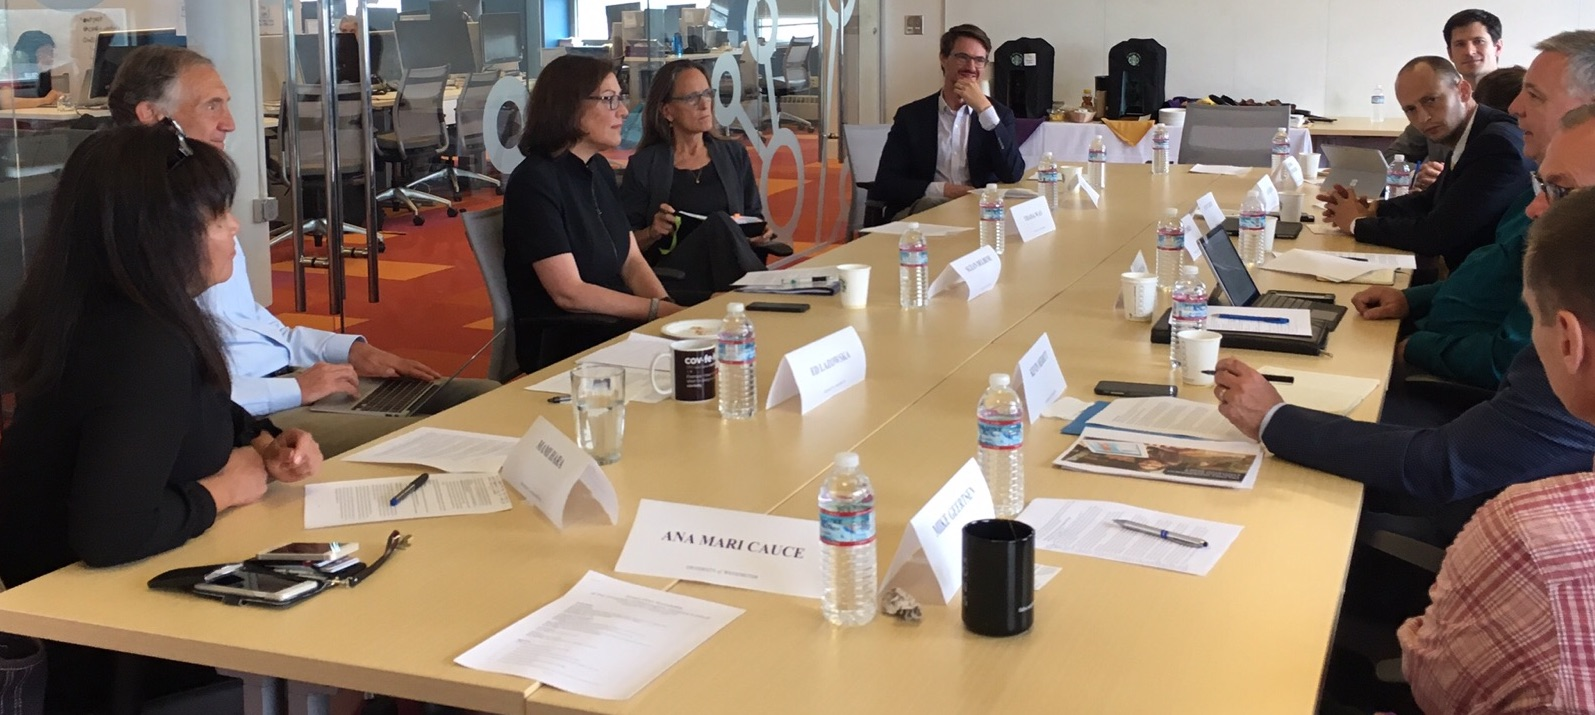 Rep. Suzan DelBene met with various stakeholders in August prior to introducing her legislation to the House of Representatives.